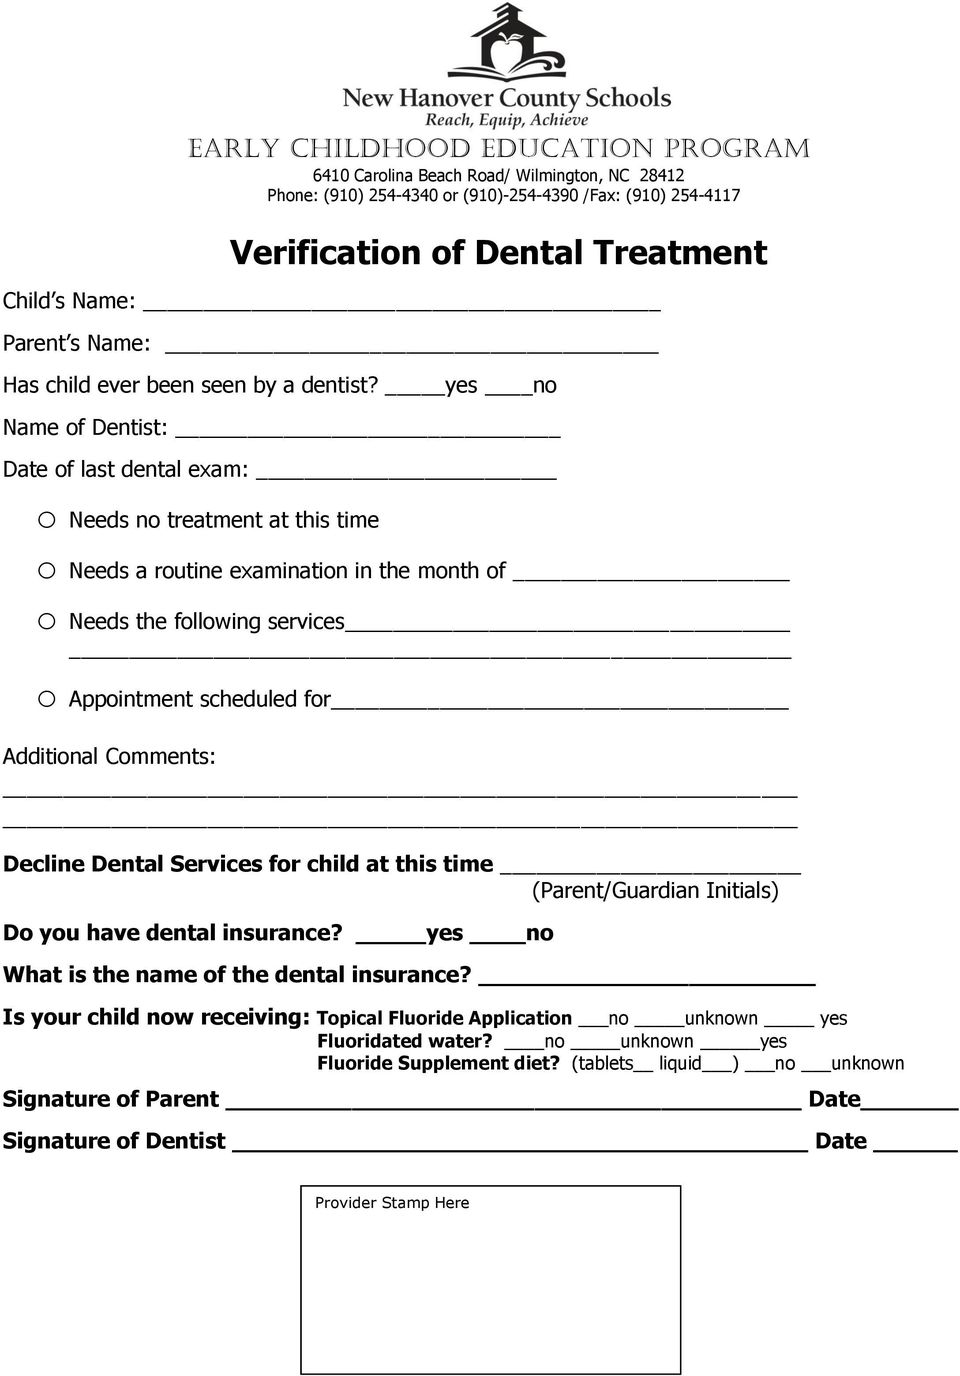 yes no Name of Dentist: Date of last dental exam: o Needs no treatment at this time o Needs a routine examination in the month of o Needs the following services o Appointment scheduled for Additional